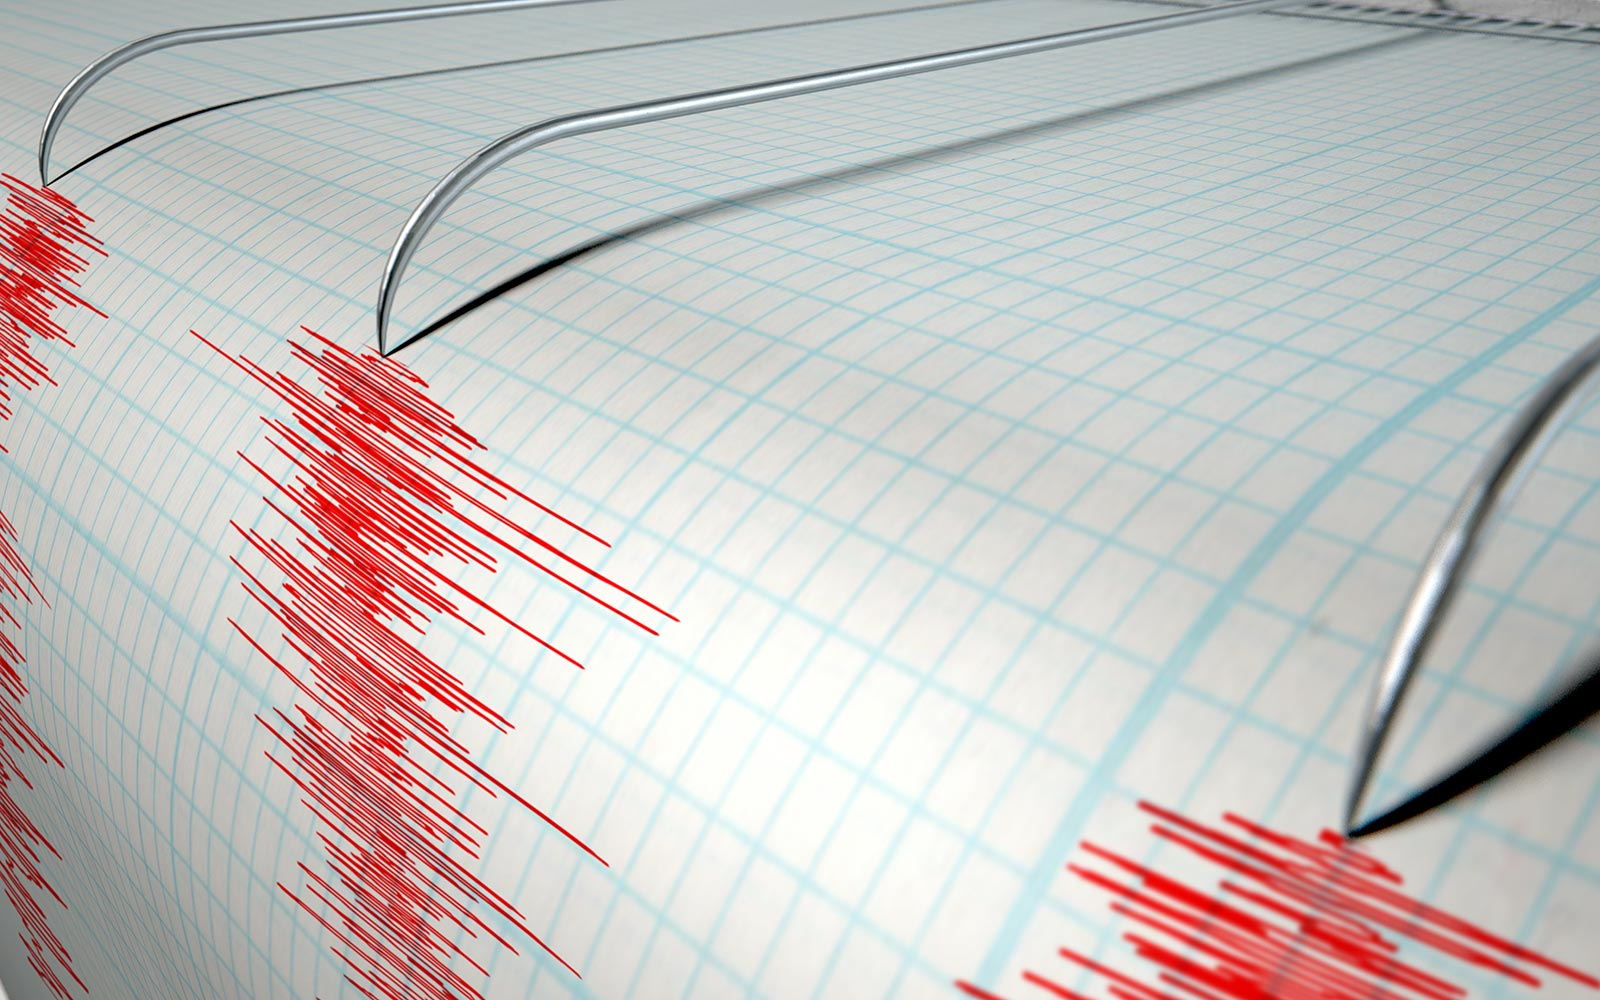 an analysis of seismic activity in california The new report identifies the southern san andreas fault as the greatest threat for earthquake activity of any region in california the new model is an update of a previous forecast from 2008, which improved upon previous findings using new data and methods resulting in more precise predictions.